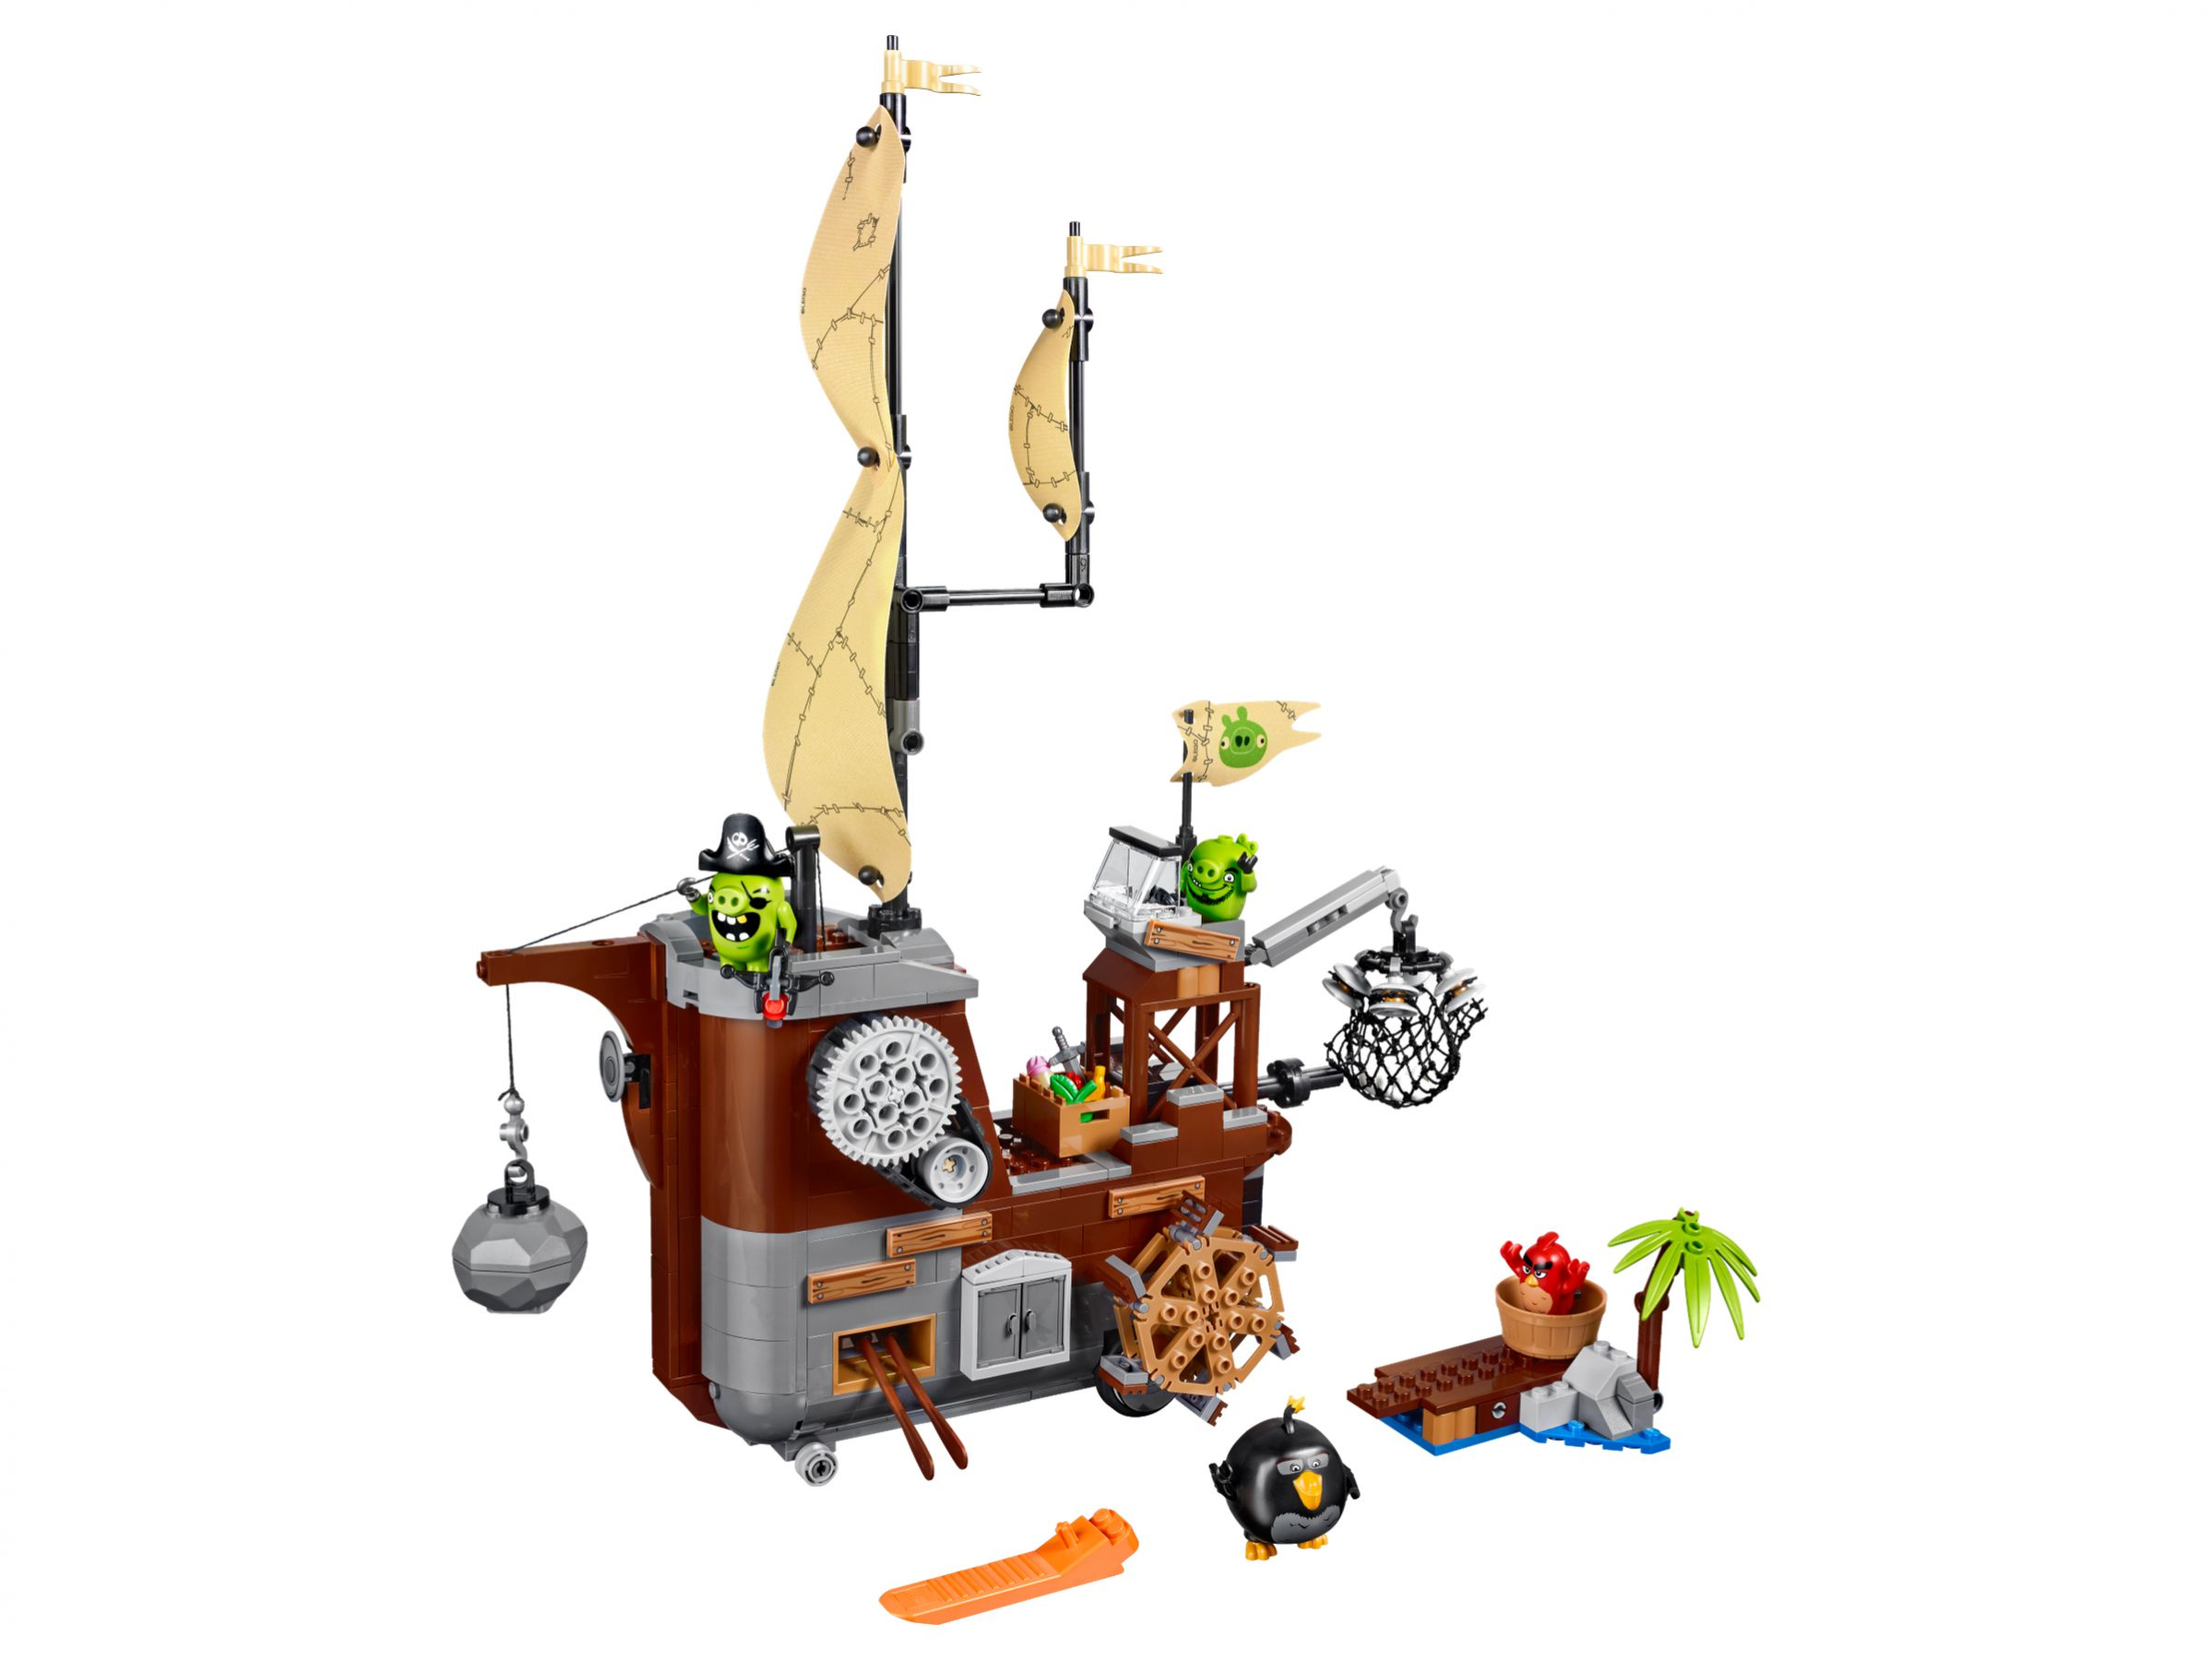 LEGO Angry Birds 75825 Piggy Pirate Ship LEGO_75825.jpg